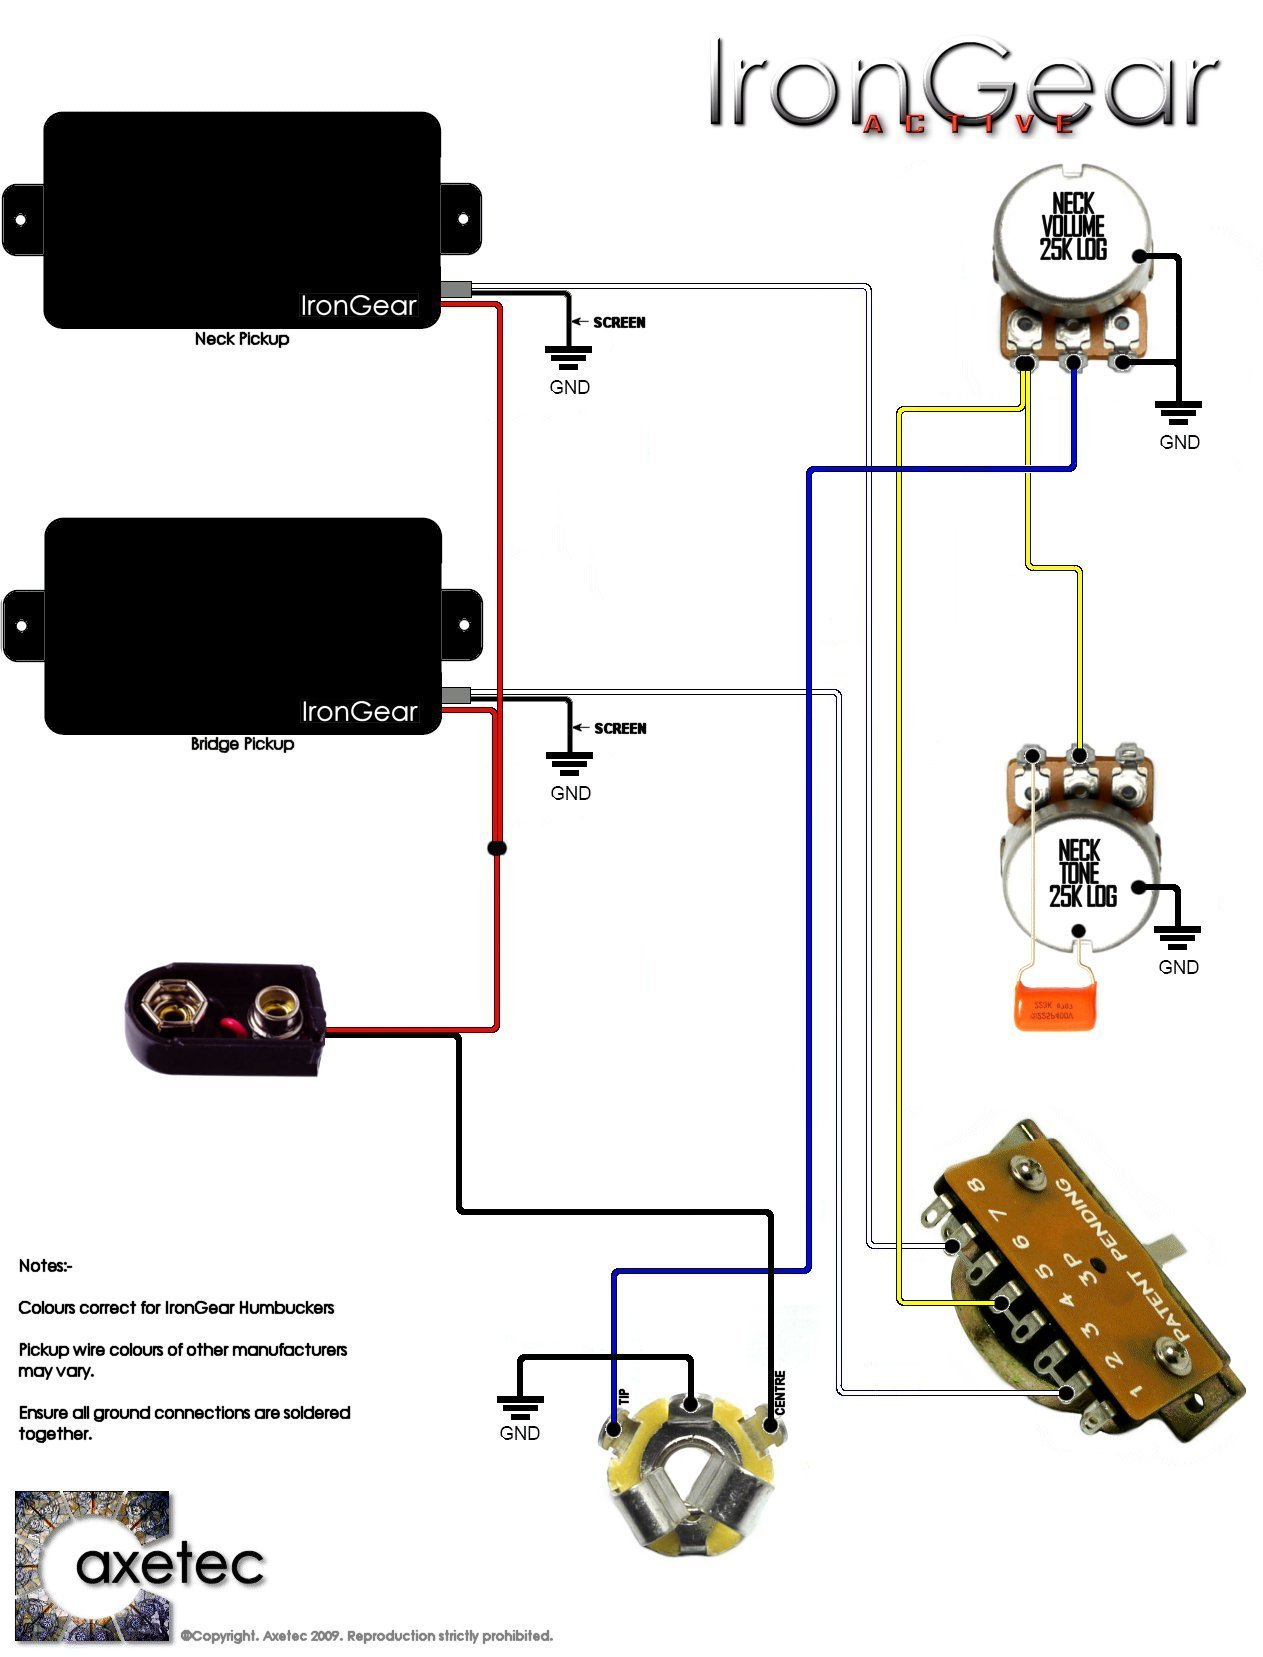 806C4 Wiring Diagram Blade Jackson | Digital Resources on jca20h diagram, jackson guitar wiring schematics, jackson flying v wiring, jackson king v schematic, guitar string diagram, jackson 3-way switches, jackson performer wiring, jackson electric guitar schematic,